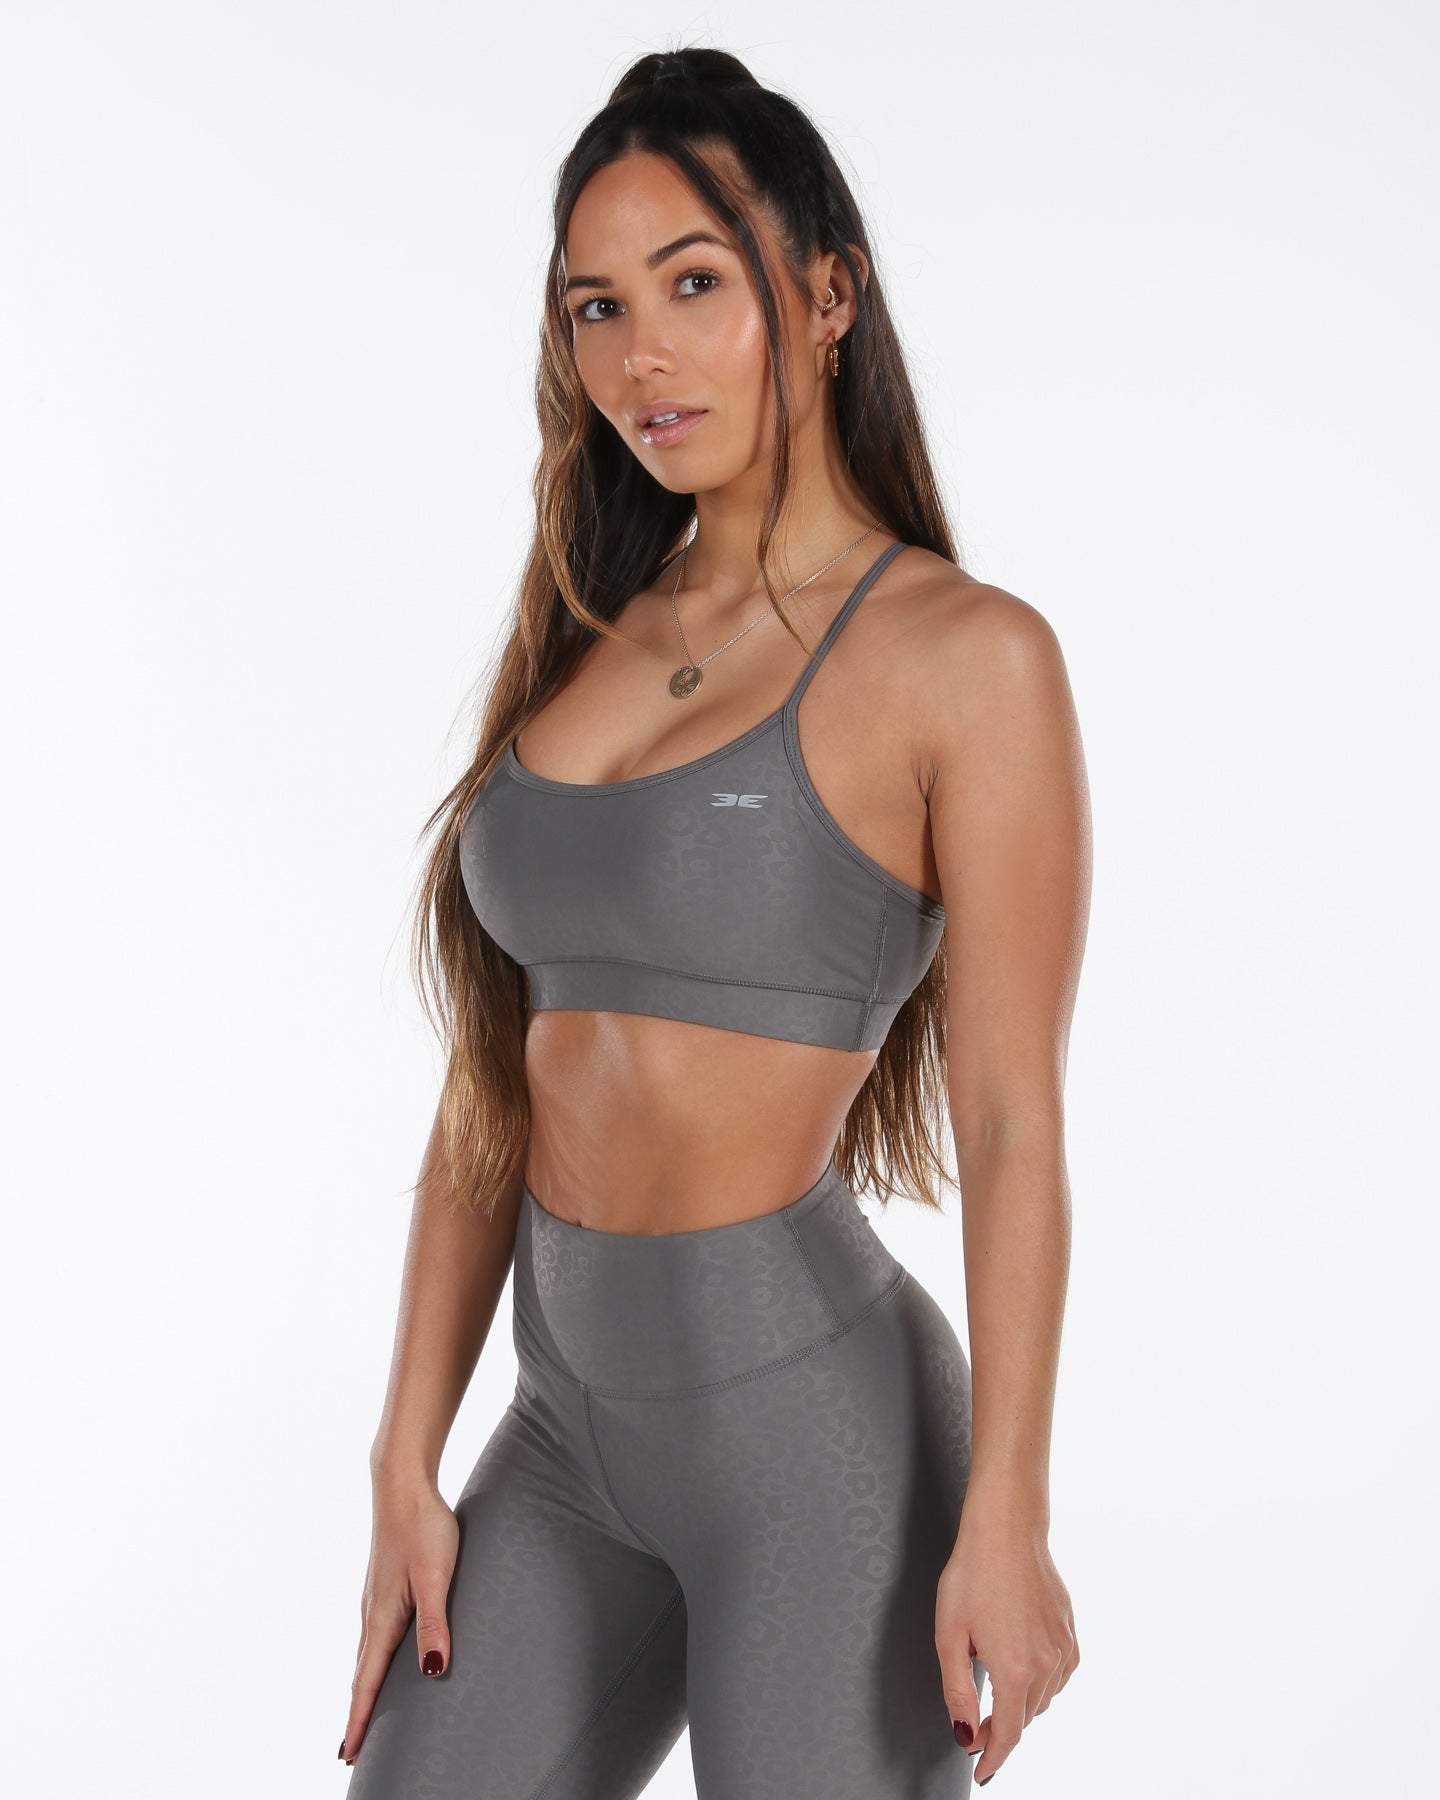 Luxe Leopard Sports Bra - Grey